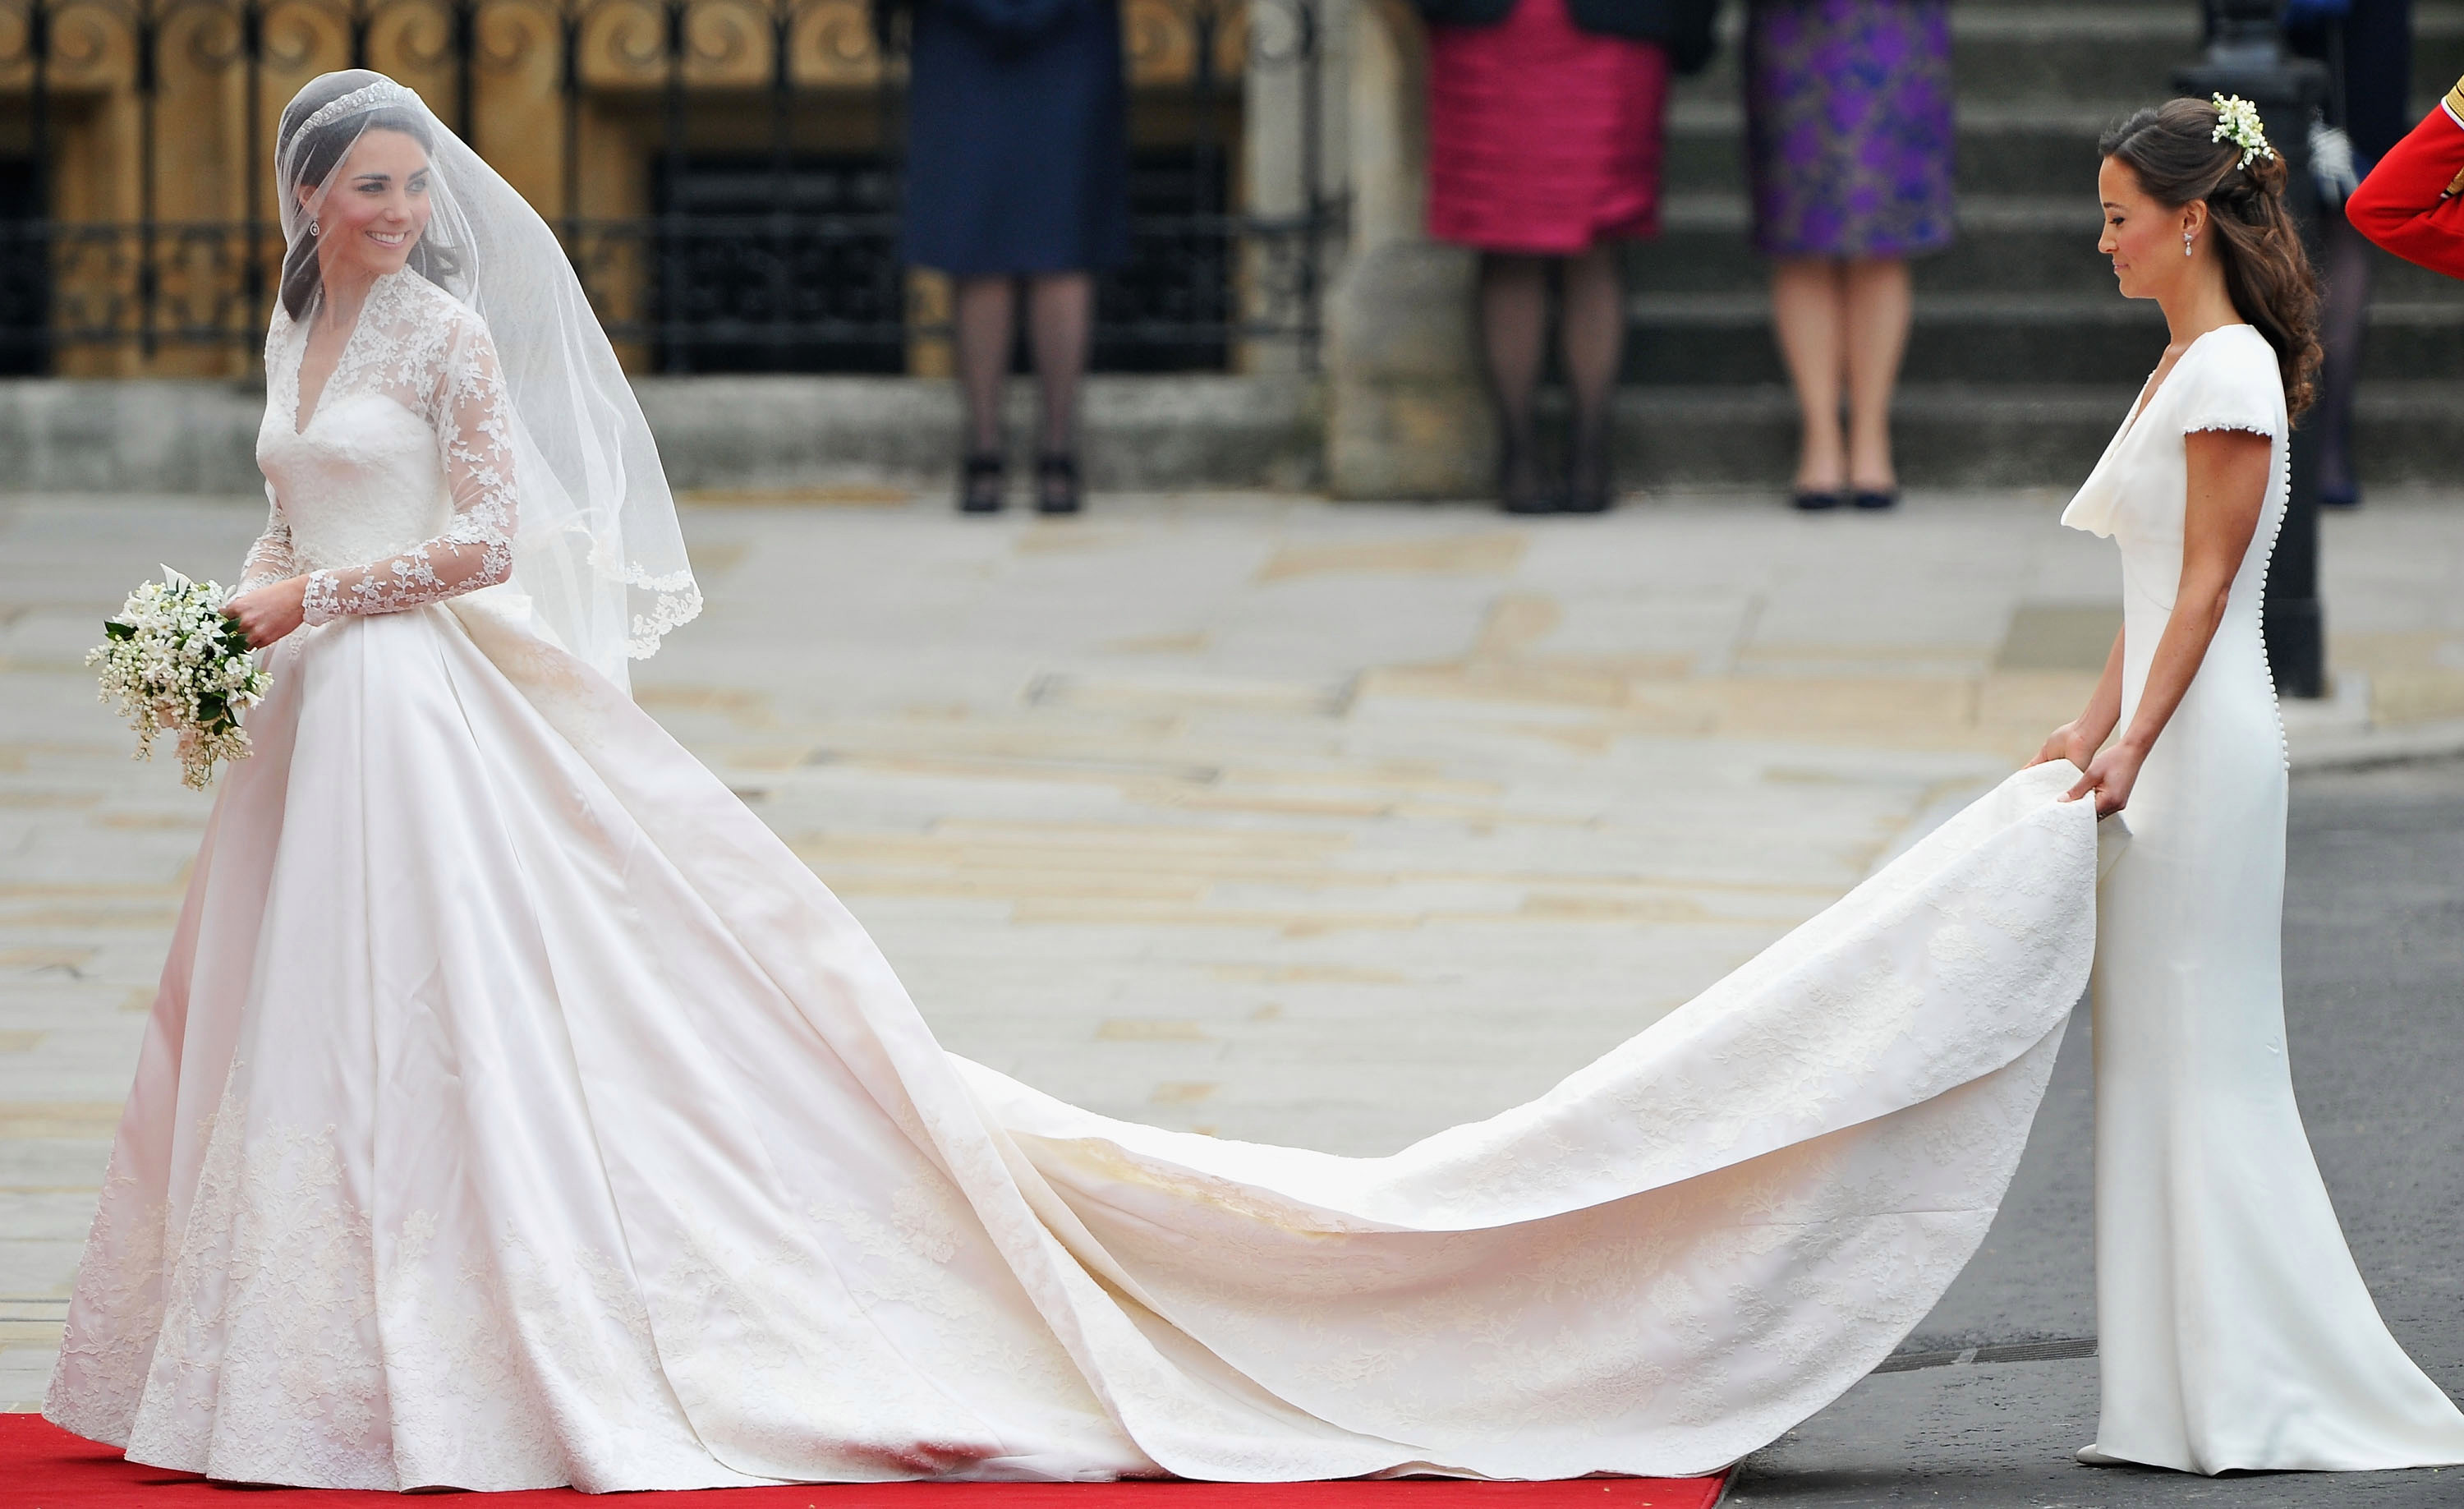 Bridesmaid Pippa Middleton became an instant star